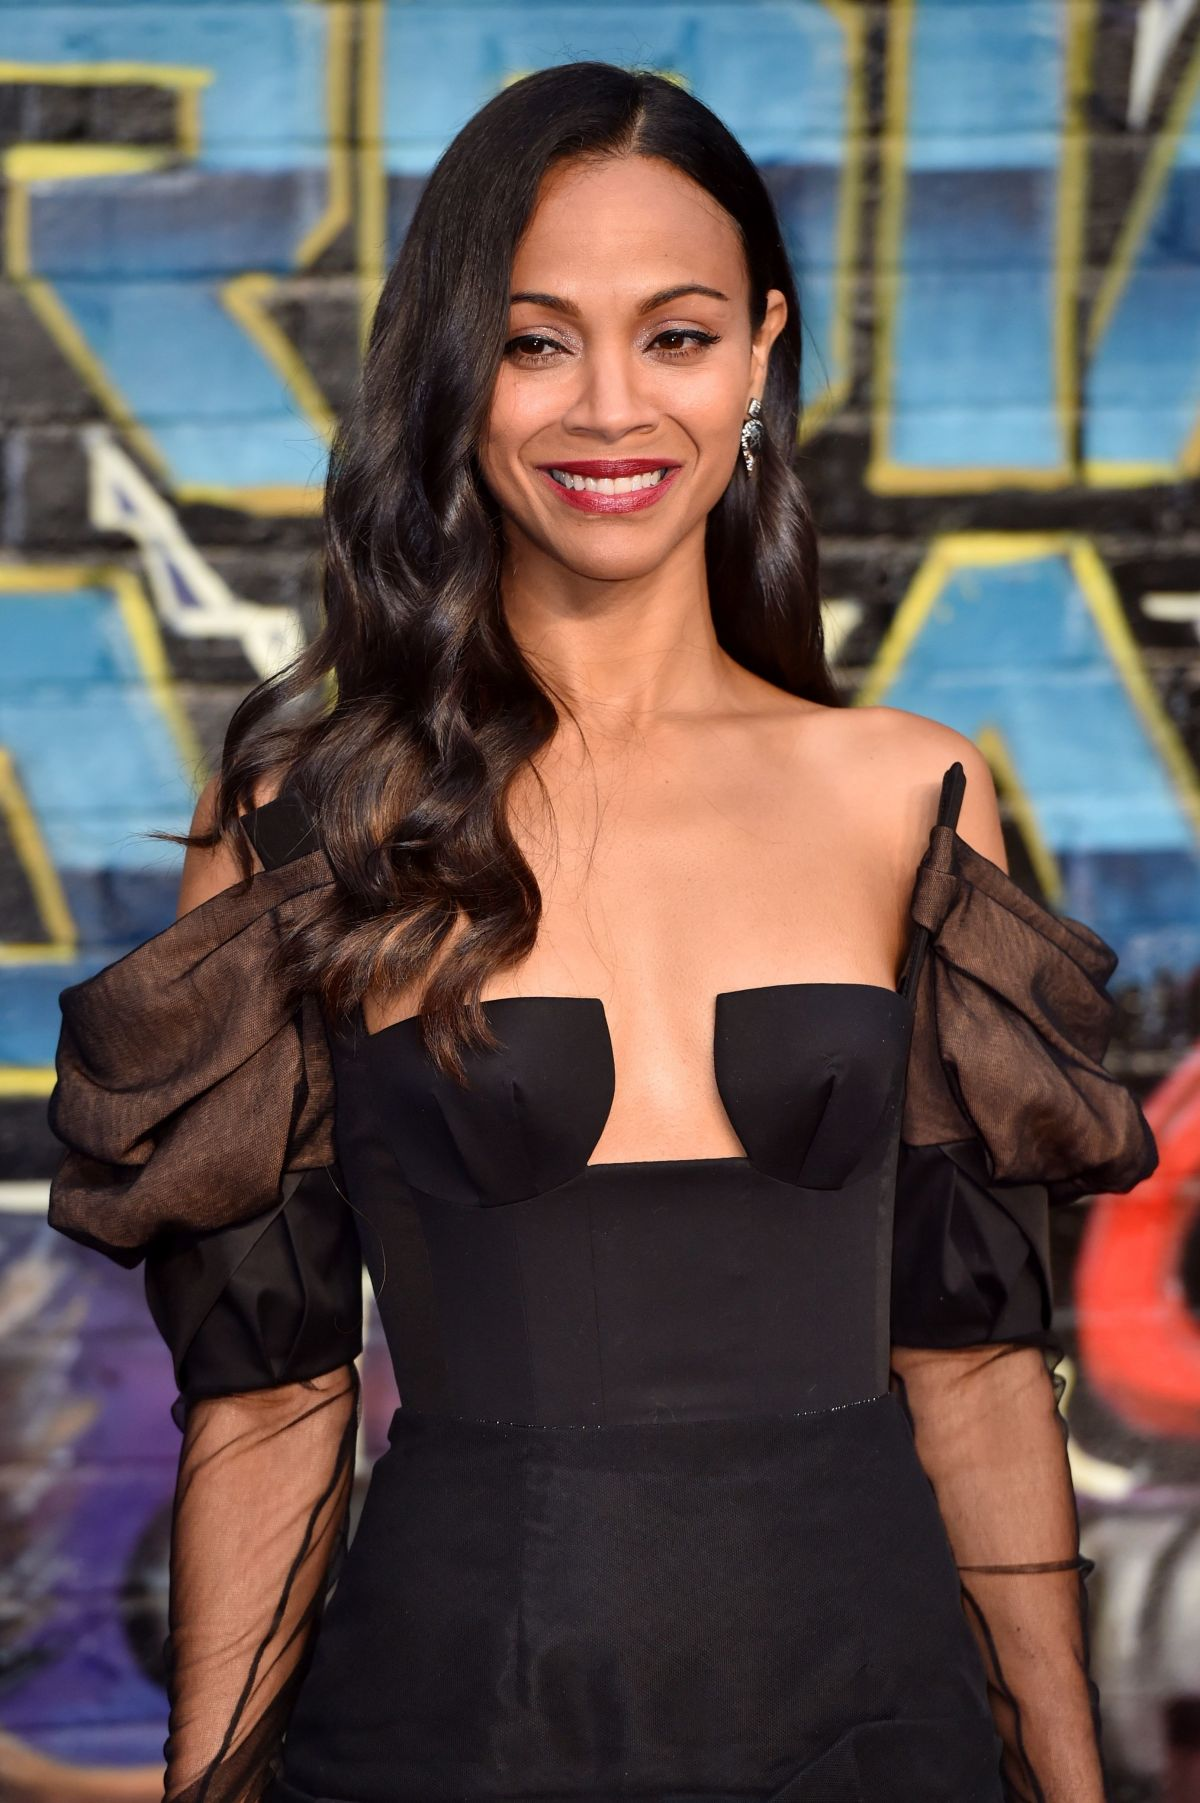 ZOE SALDANA at Guardians of the Galaxy Vol. 2 Premiere in ... Zoe Saldana